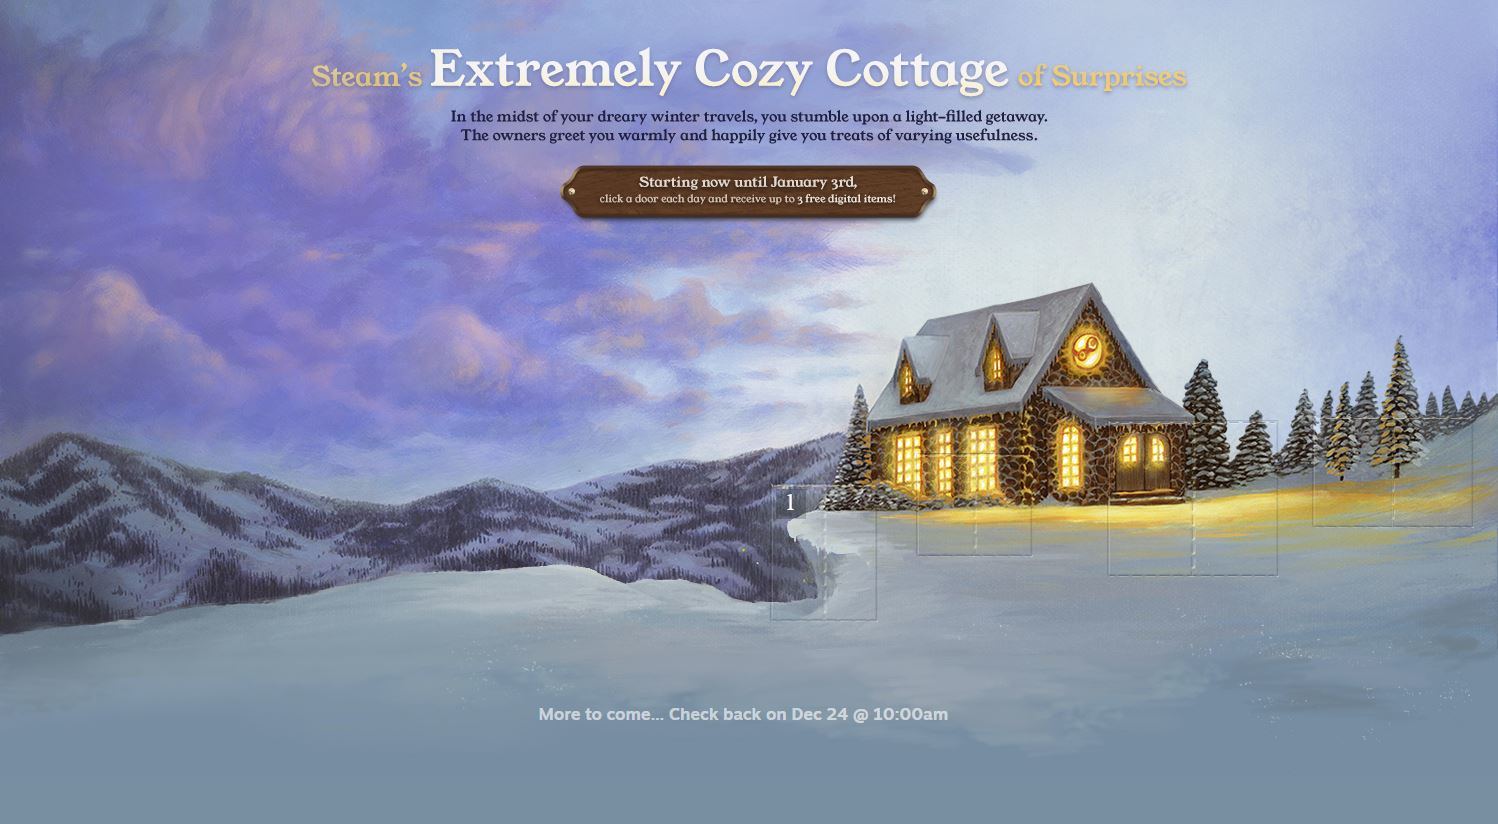 Extremely Cozy Cottage feature of Steam